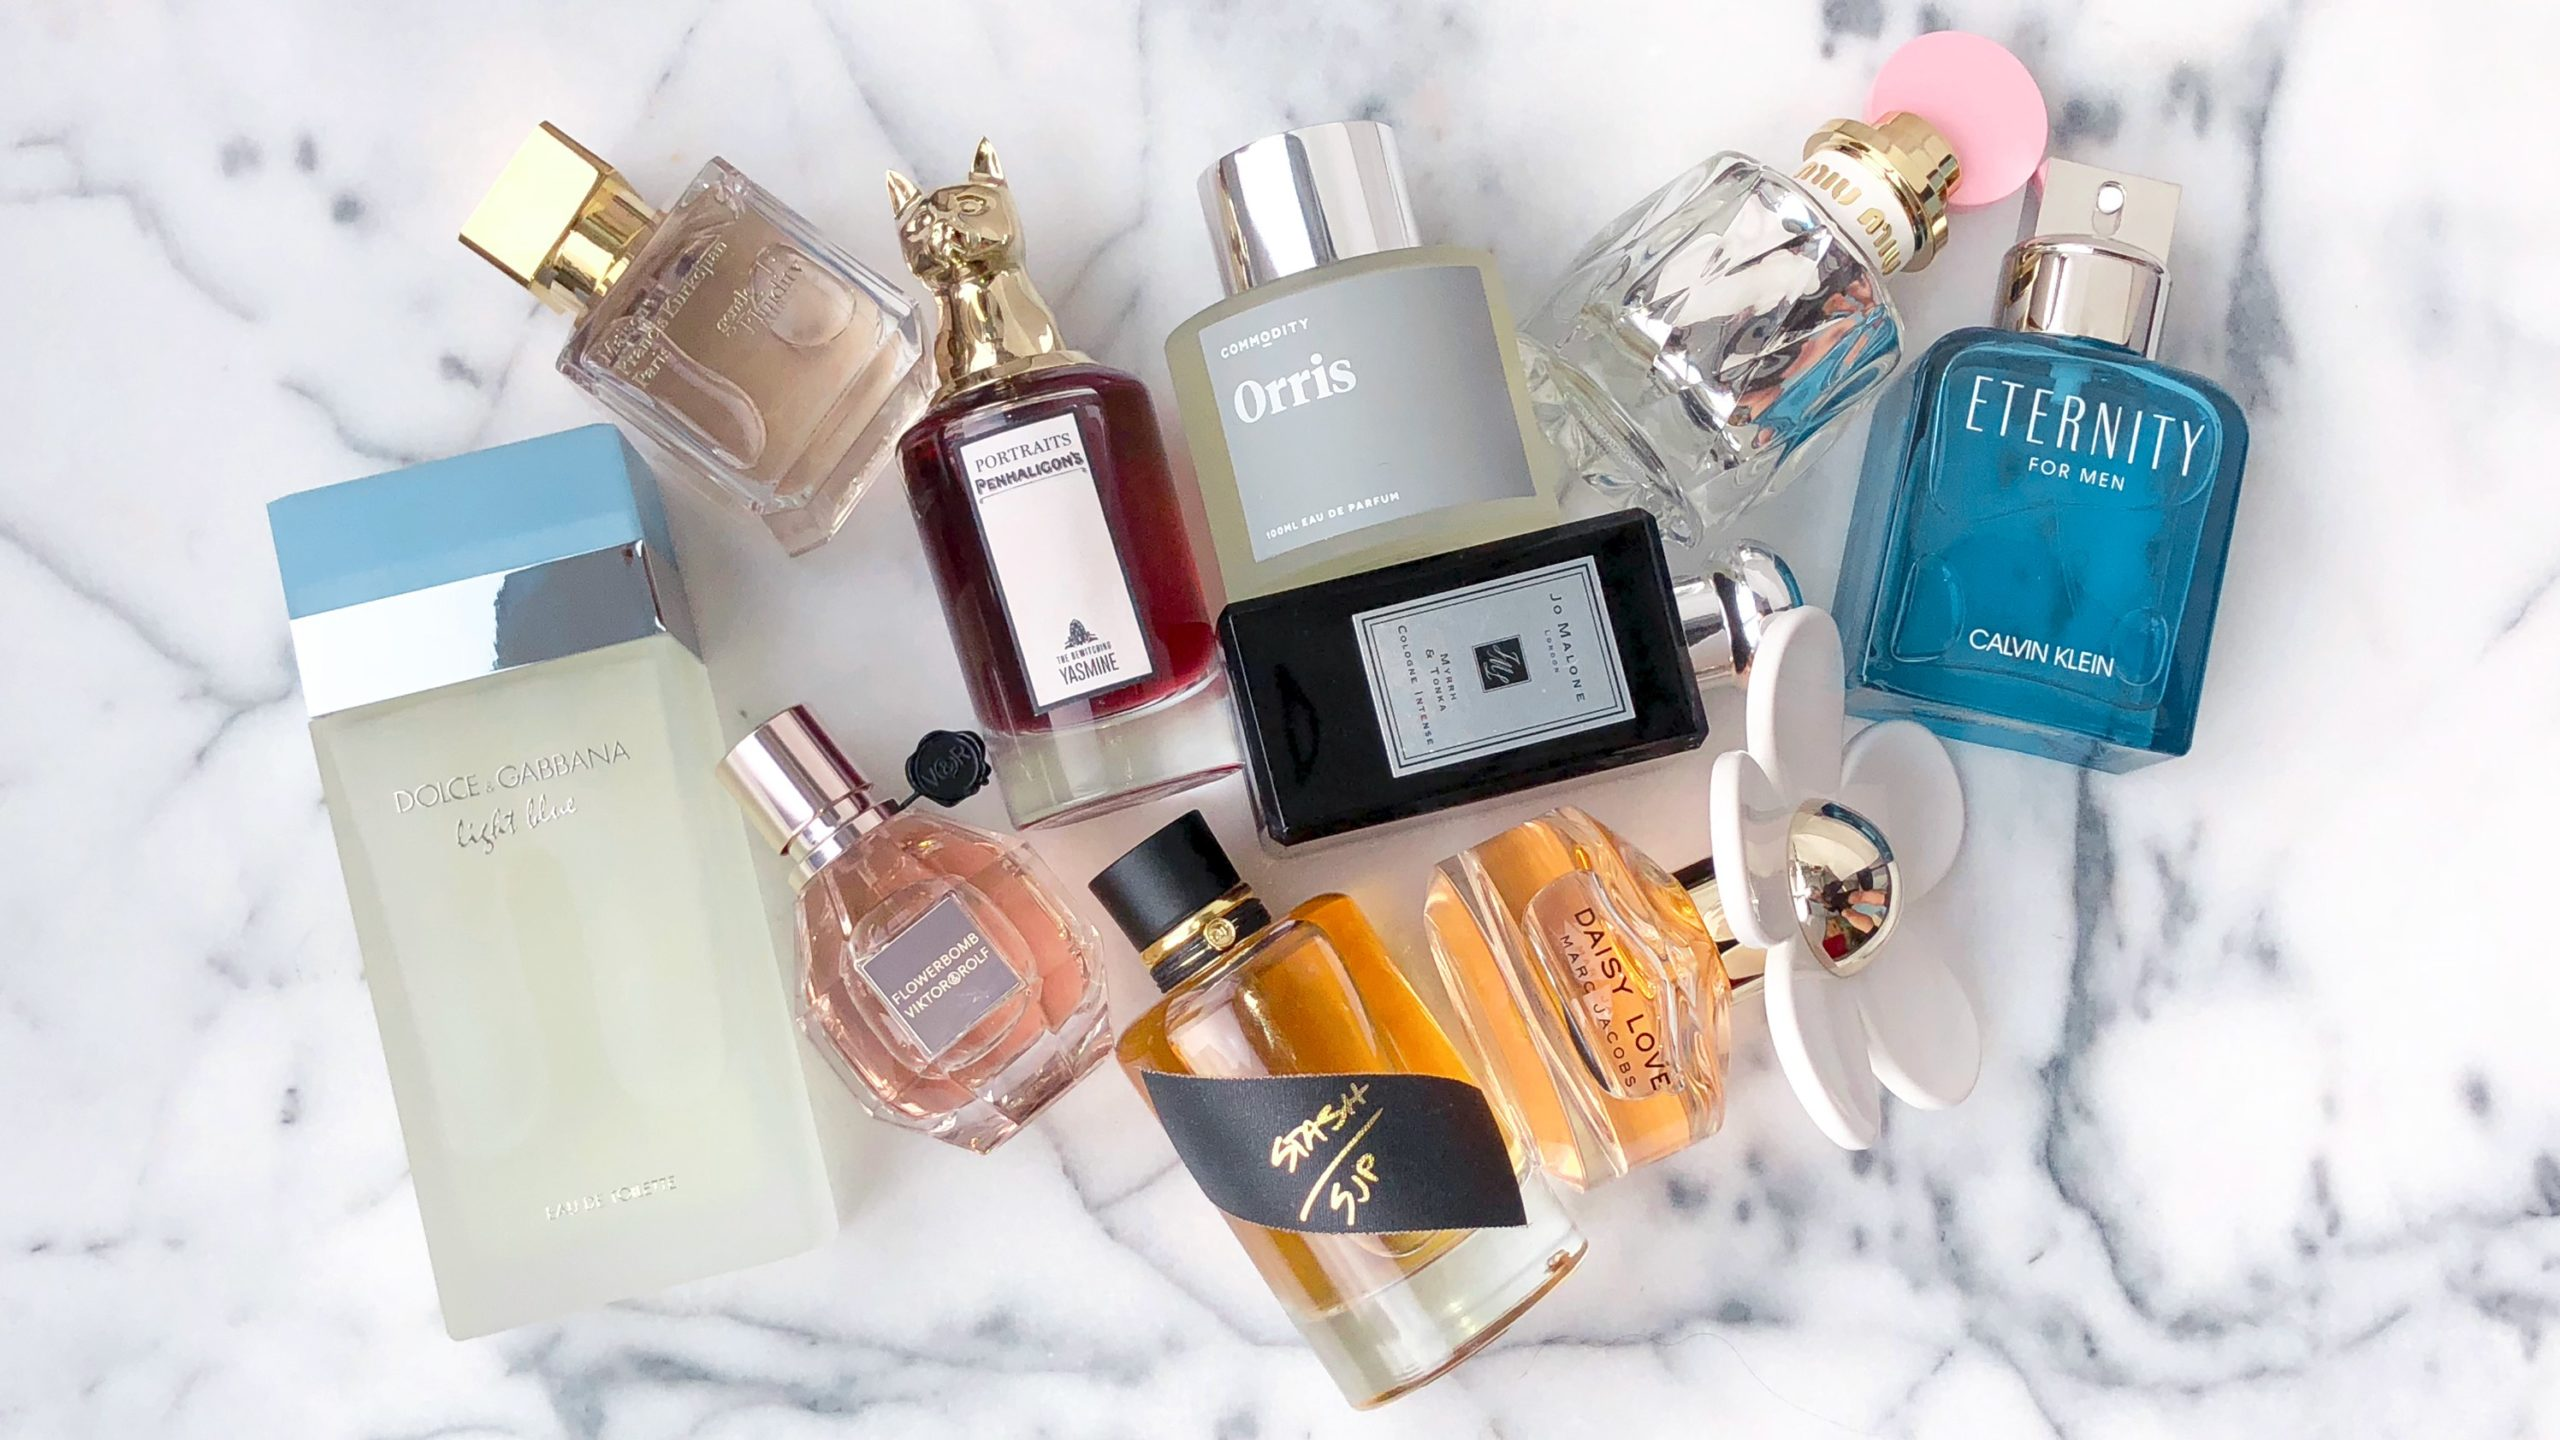 12 Best Long-lasting Perfumes For Women 2020 1